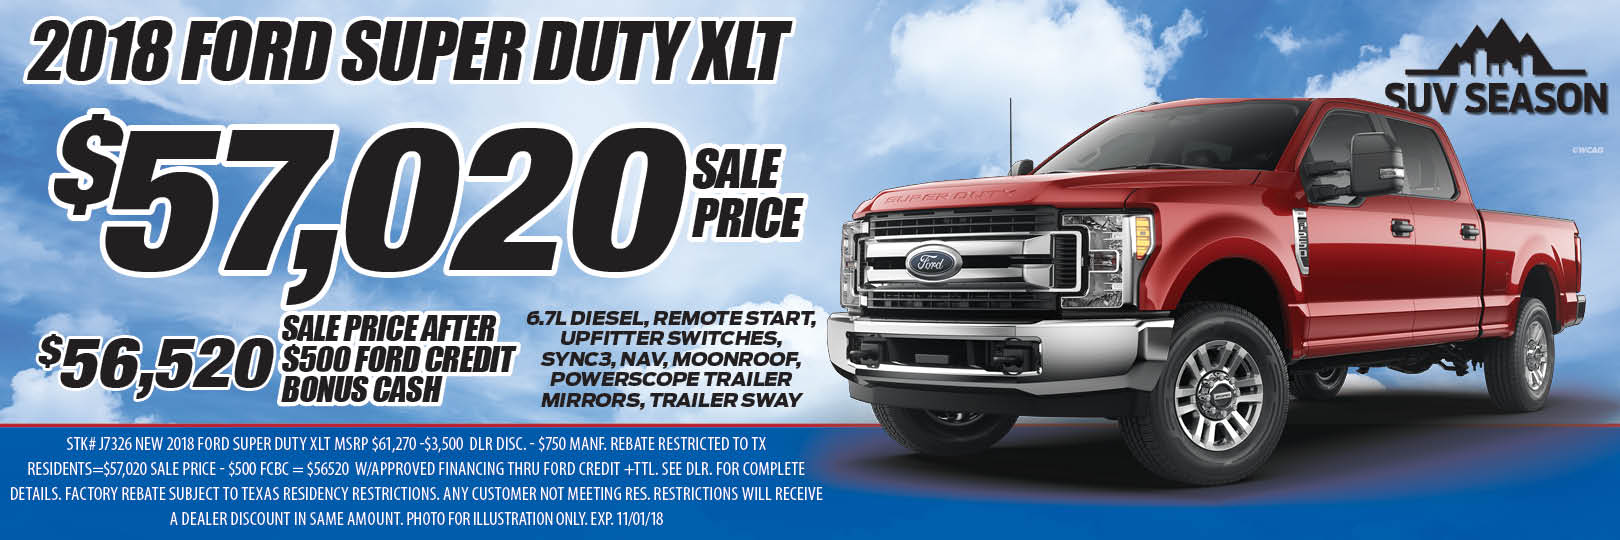 2018 Ford Super Duty XLT